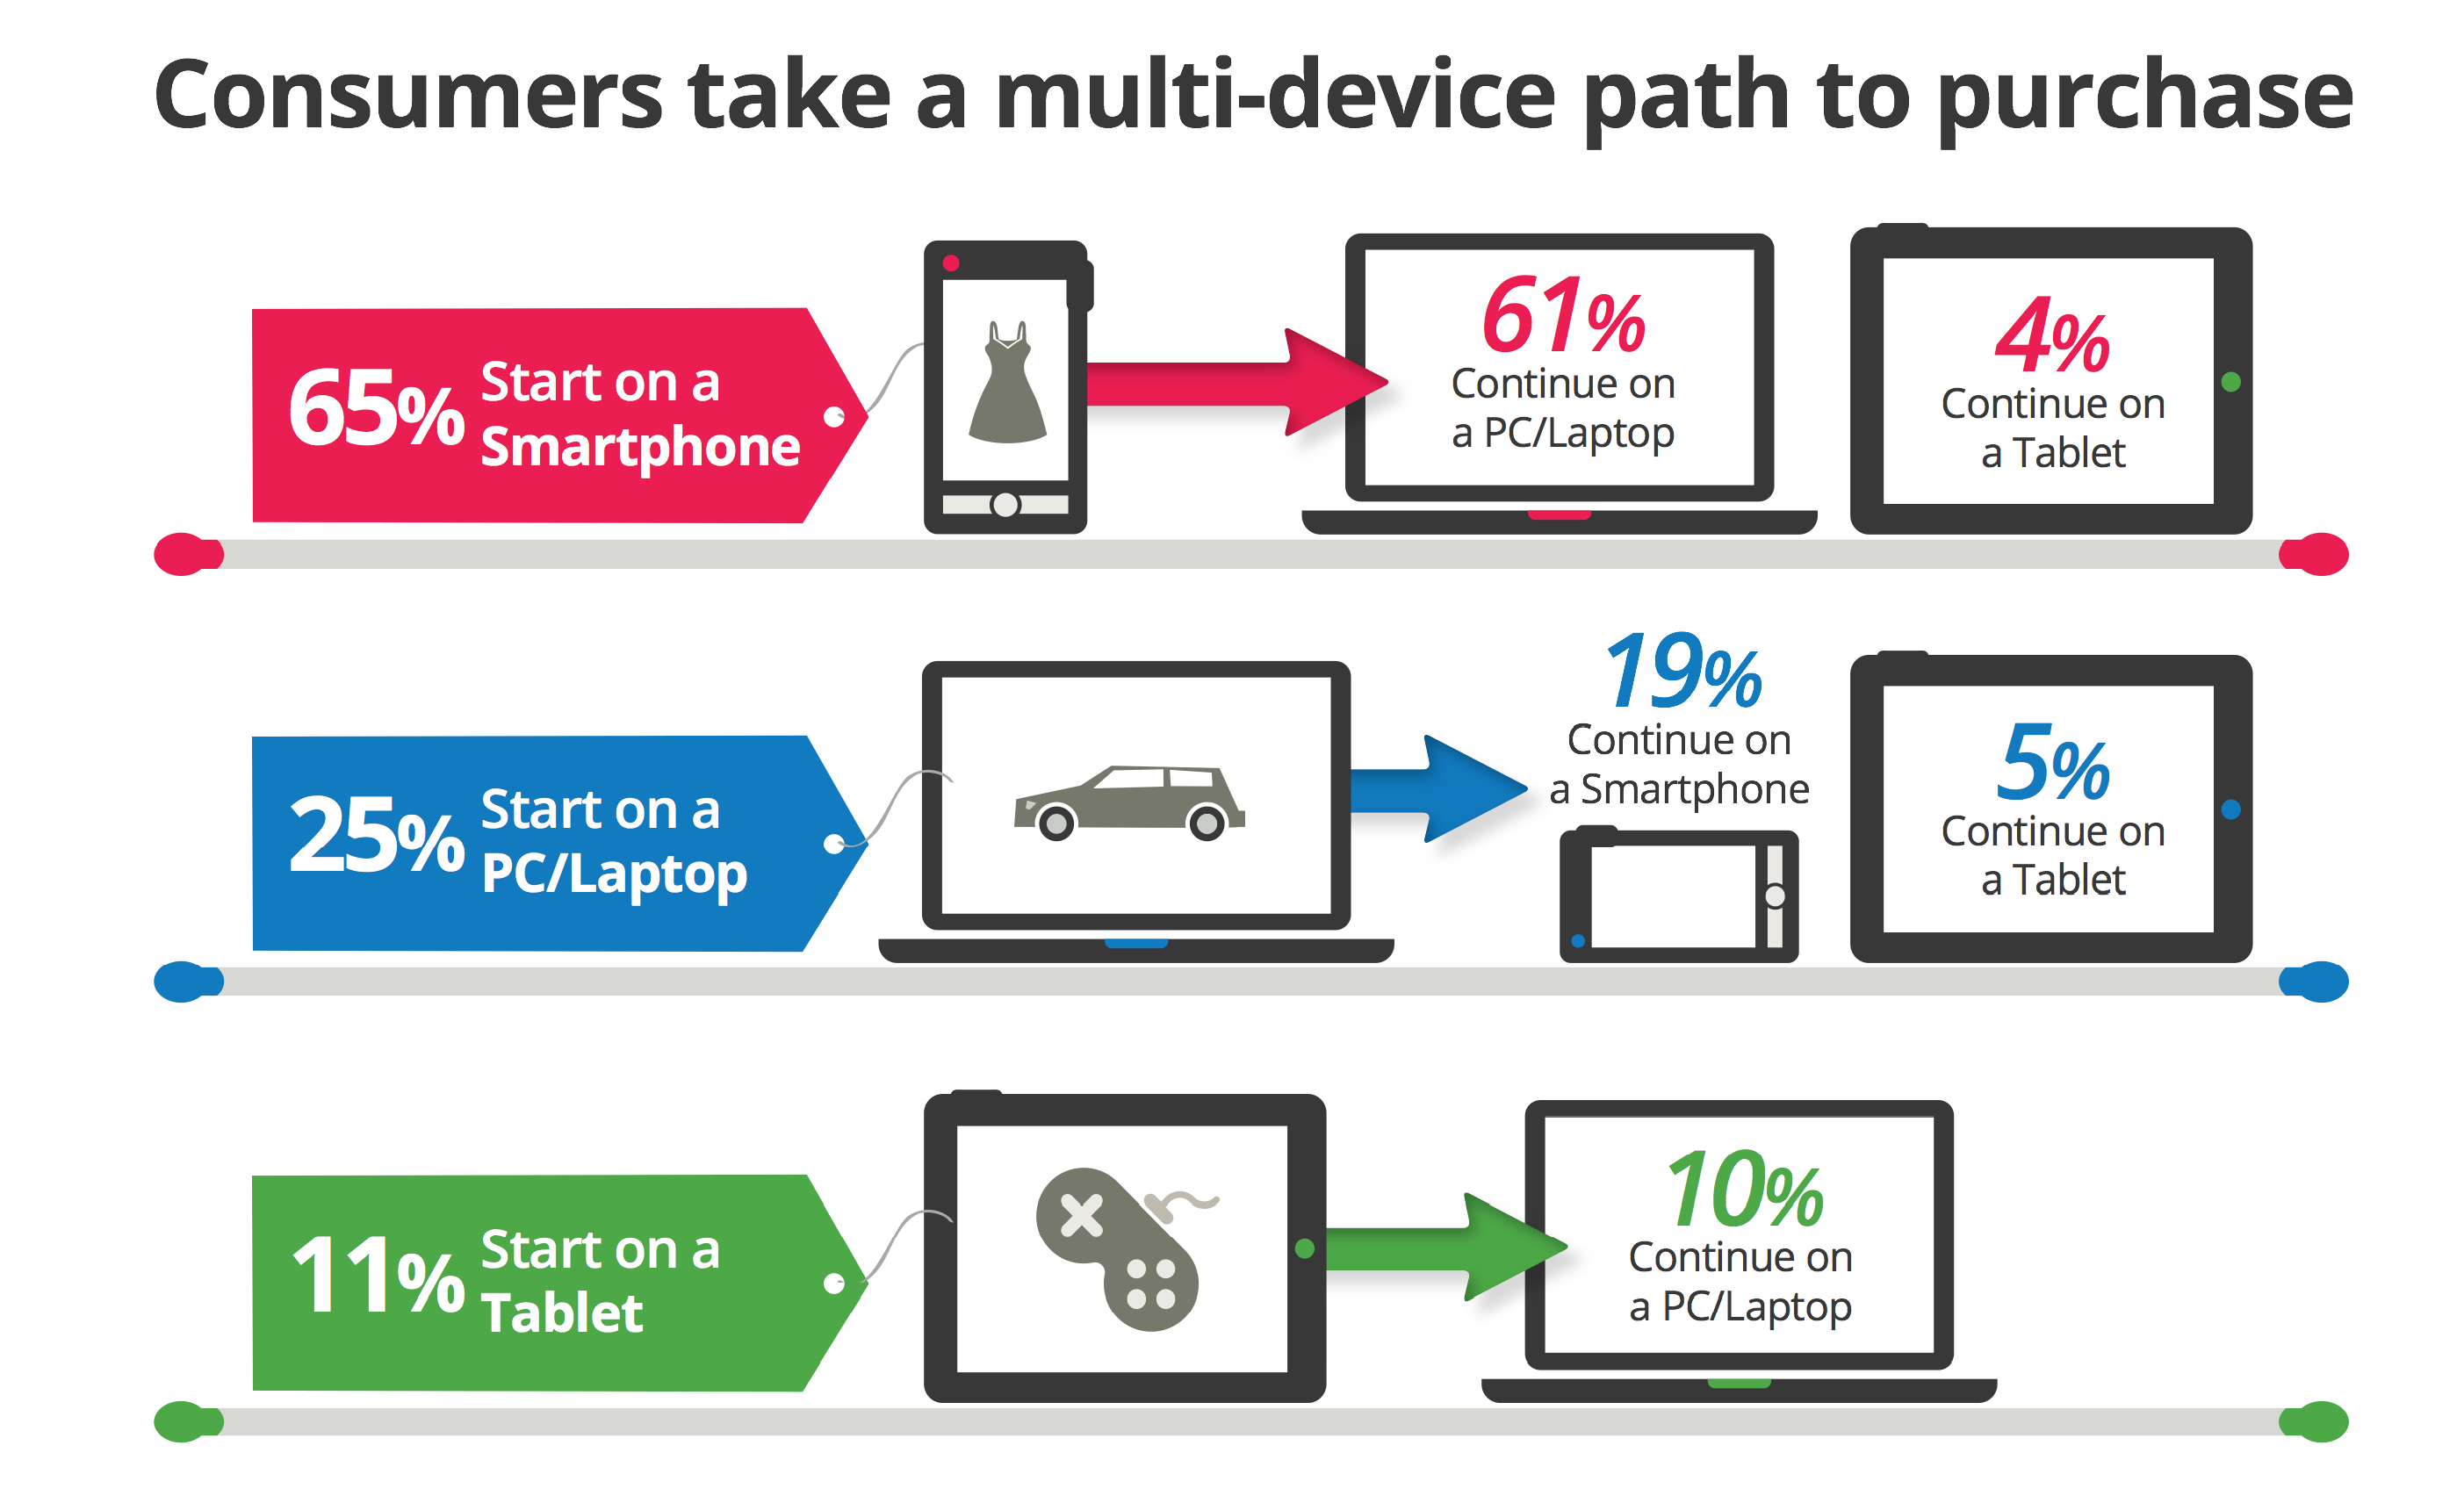 Consumers take a multi-device path to purchase